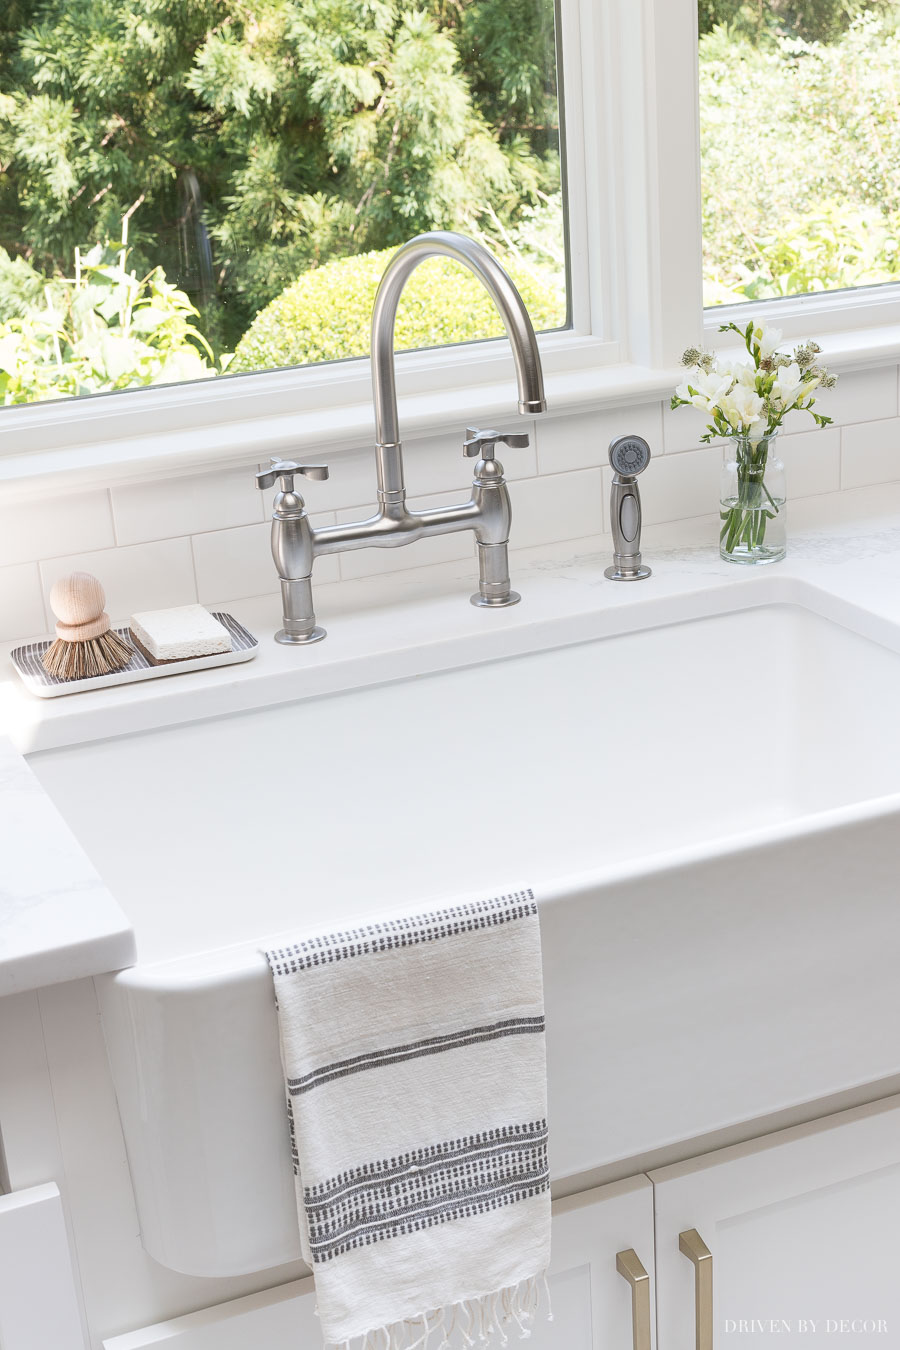 Beautiful bridge faucet with sprayer and the cutest tray and scrubber too! Sources linked in post!